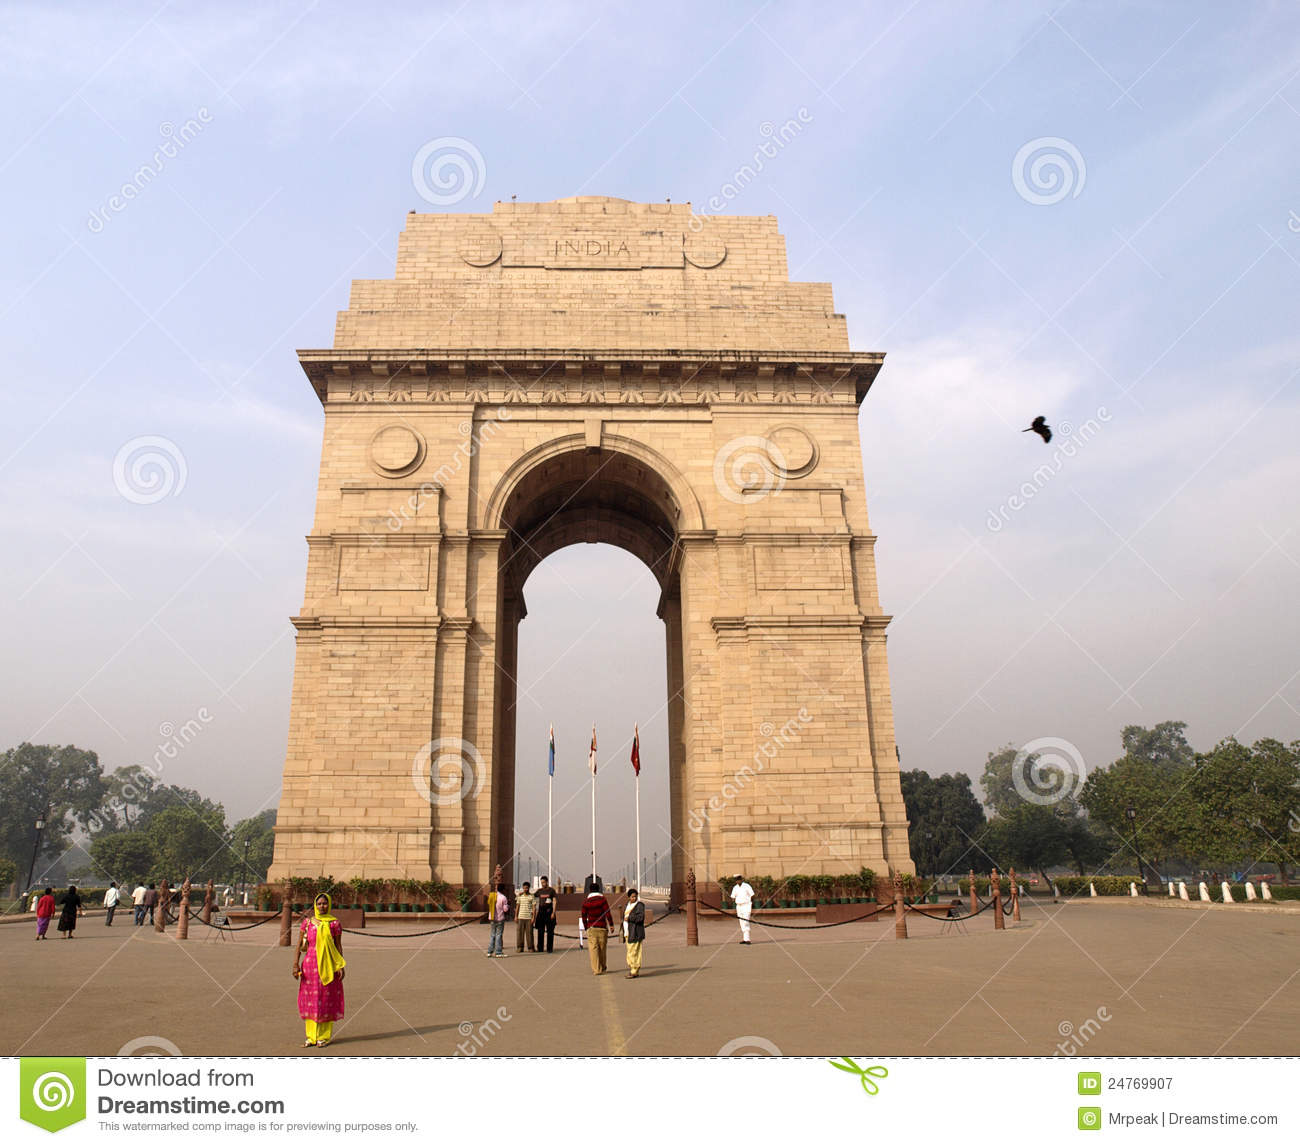 The India Gate- The National Monument of India.